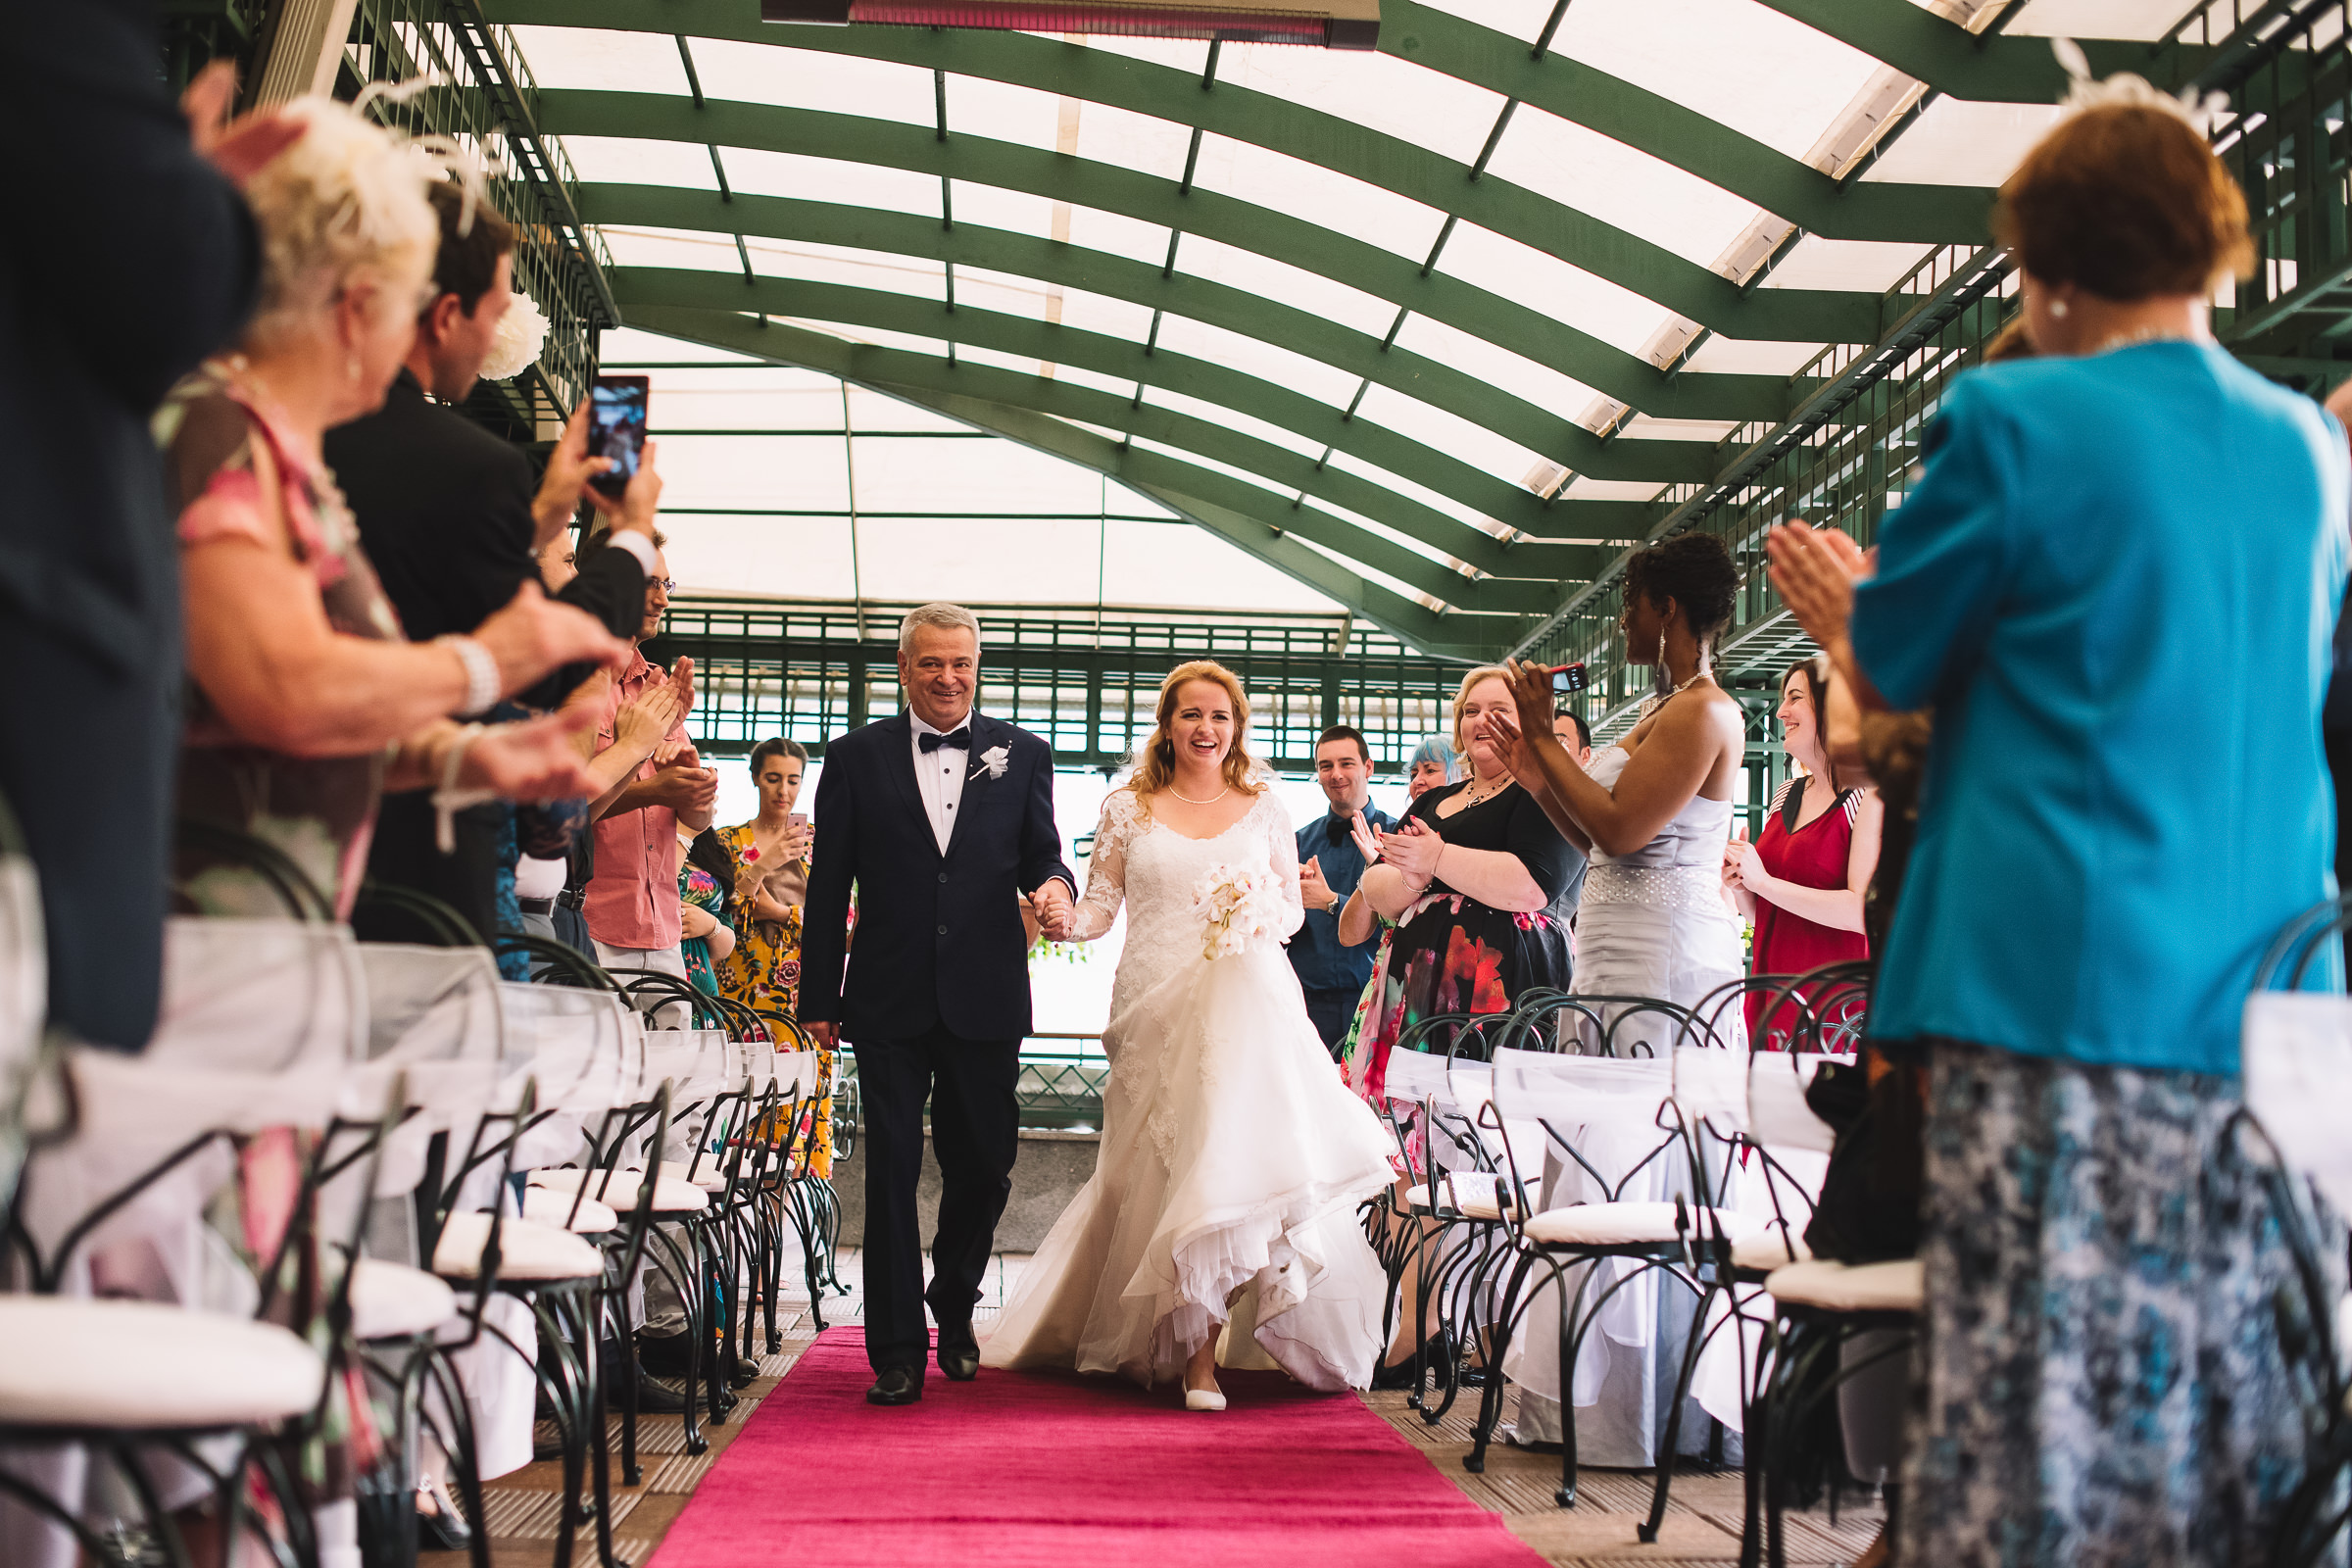 Guests applaud couple walking down aisle - photo by Deliysky Studio